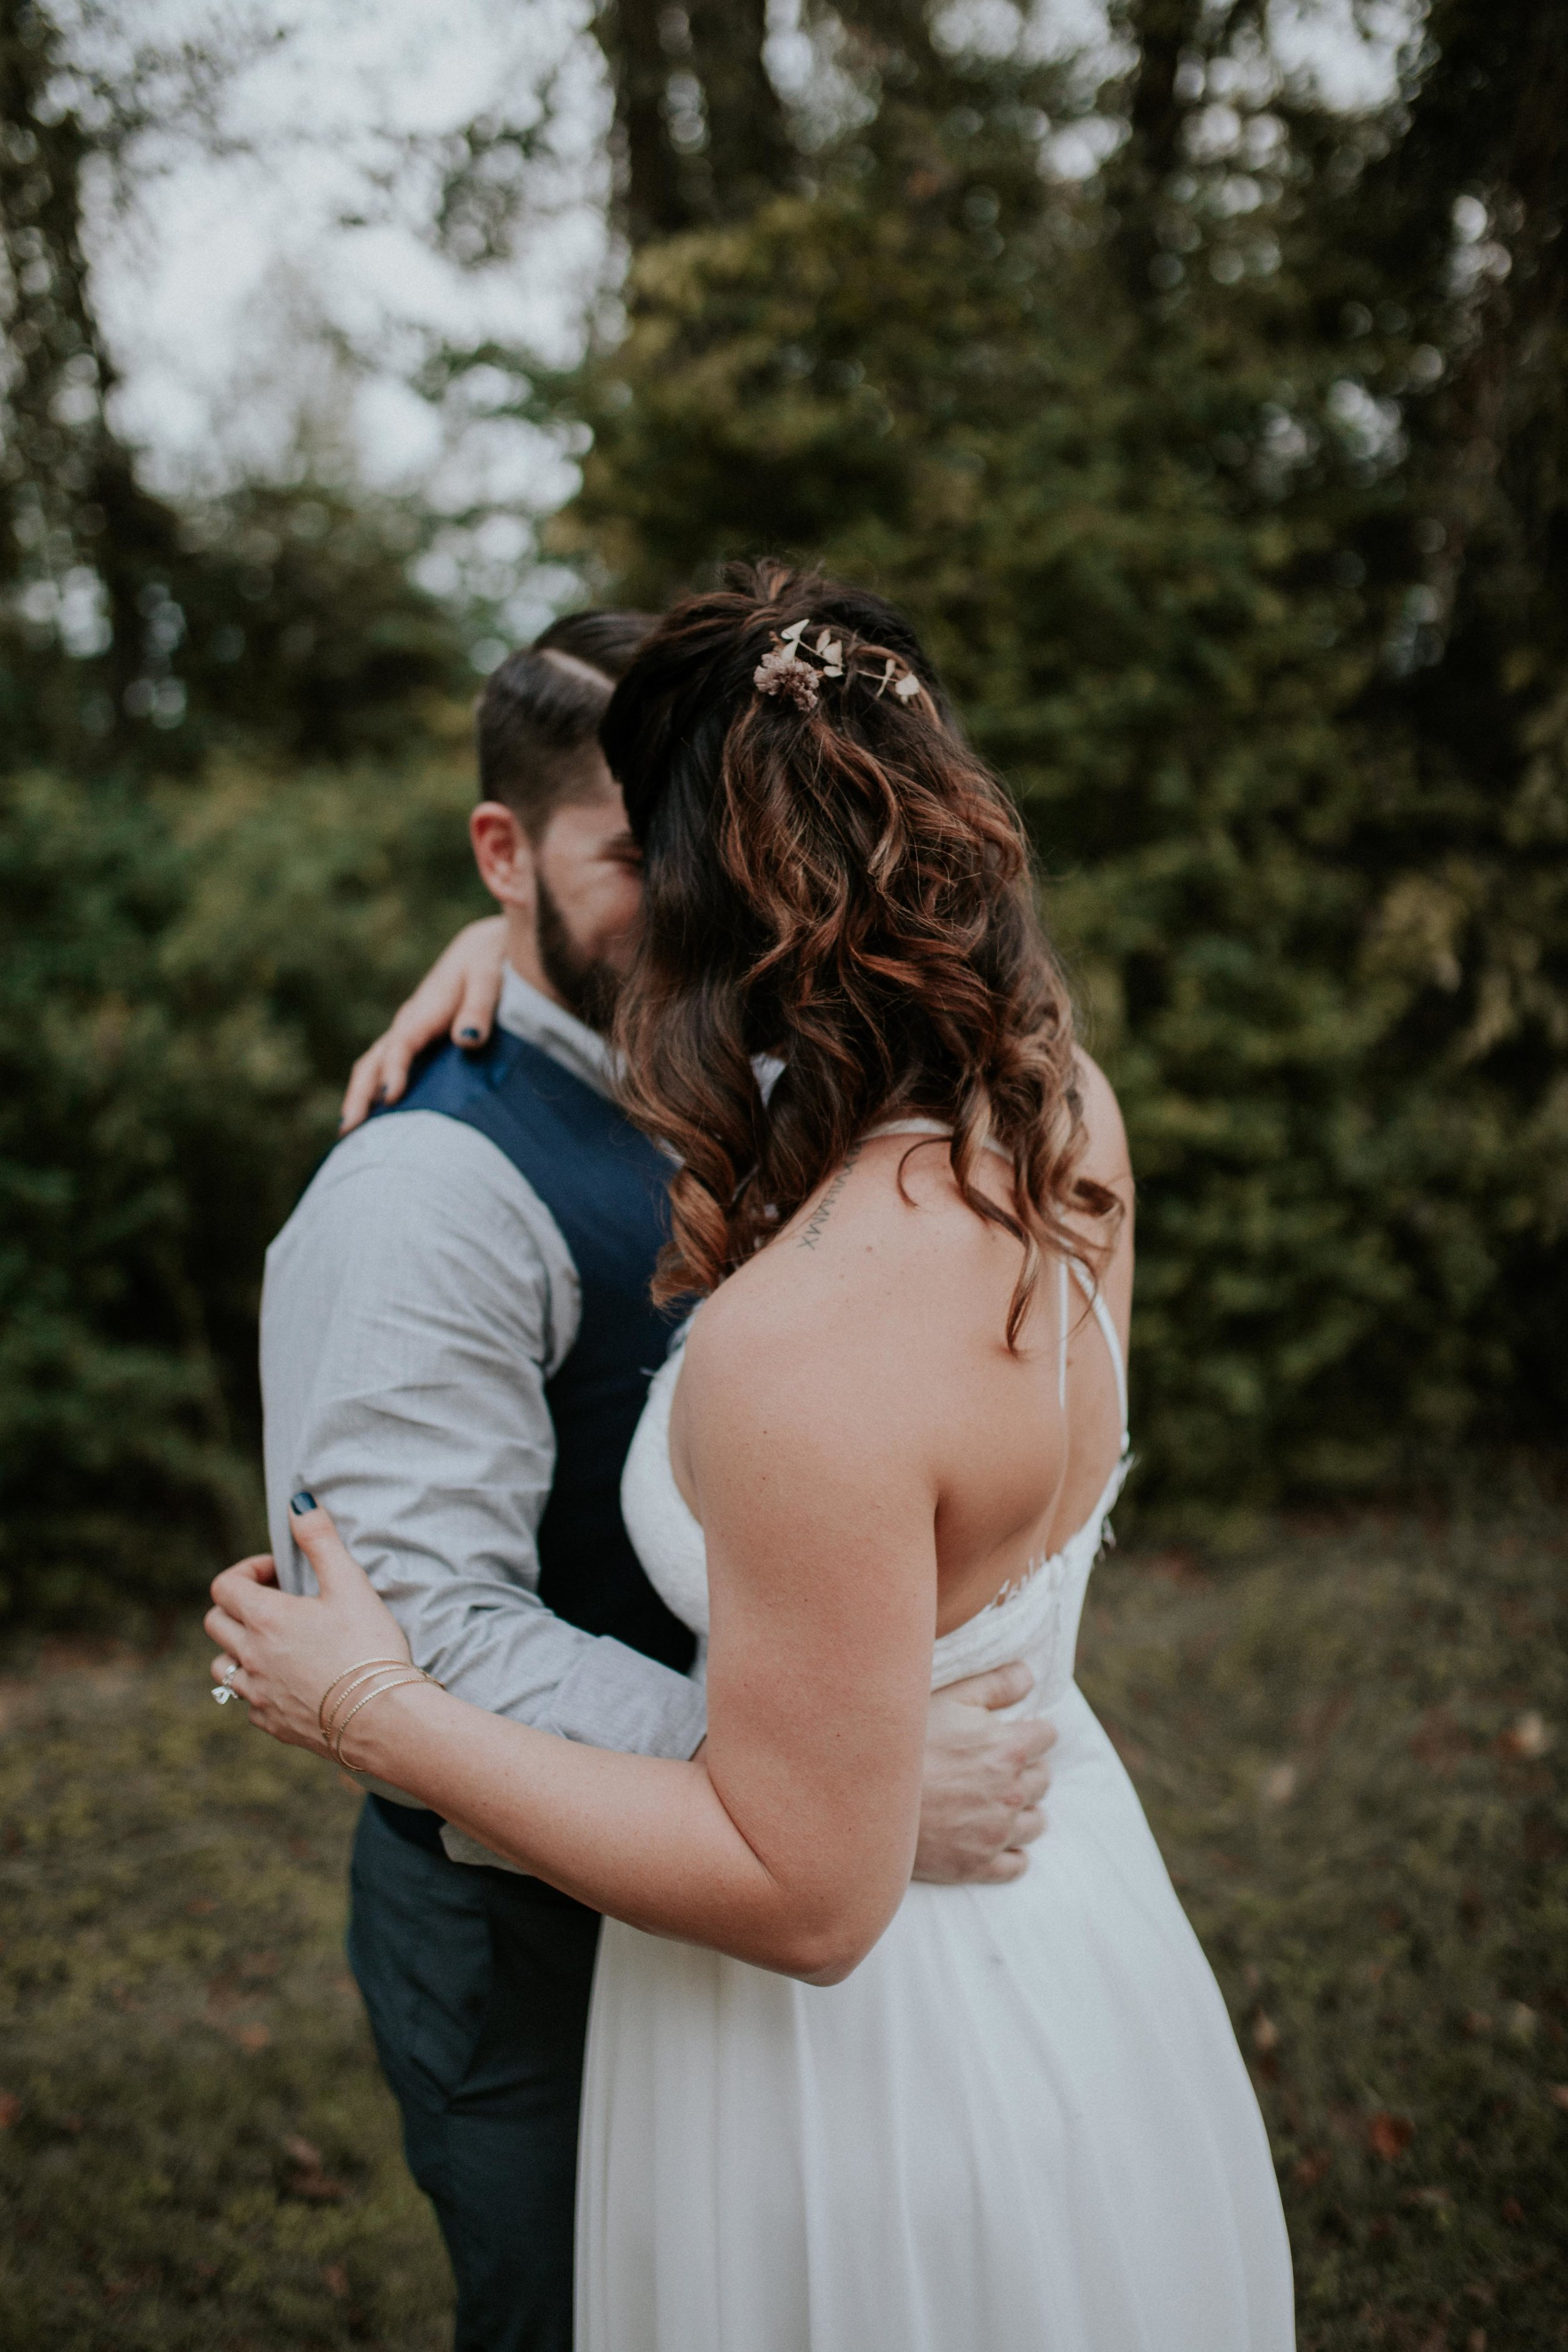 Vow Renewal in Magnolia Texas - Madeleine Frost Wedding Photographer - Sized for Blog-27.jpg